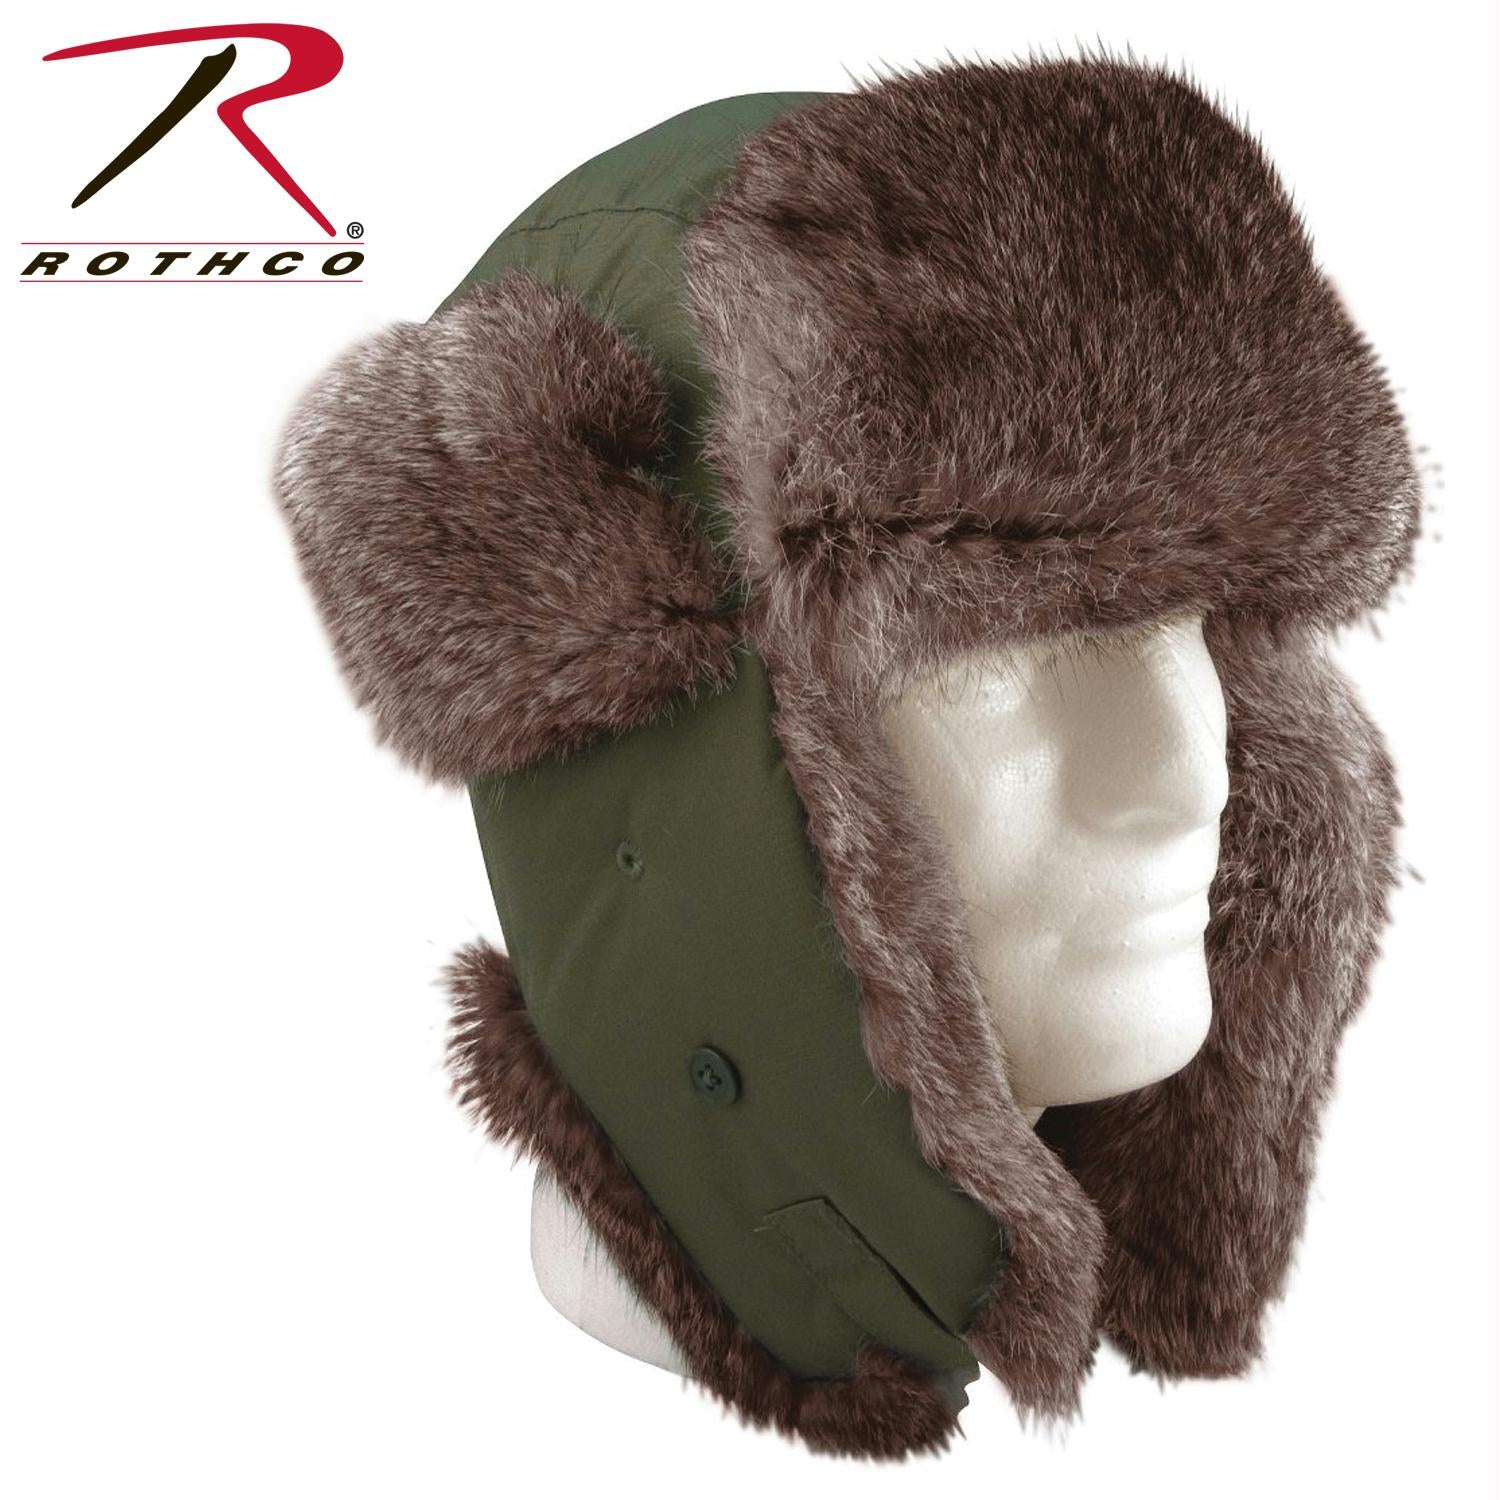 Rothco Fur Flyer's Hat - Olive Drab / 7 1/2